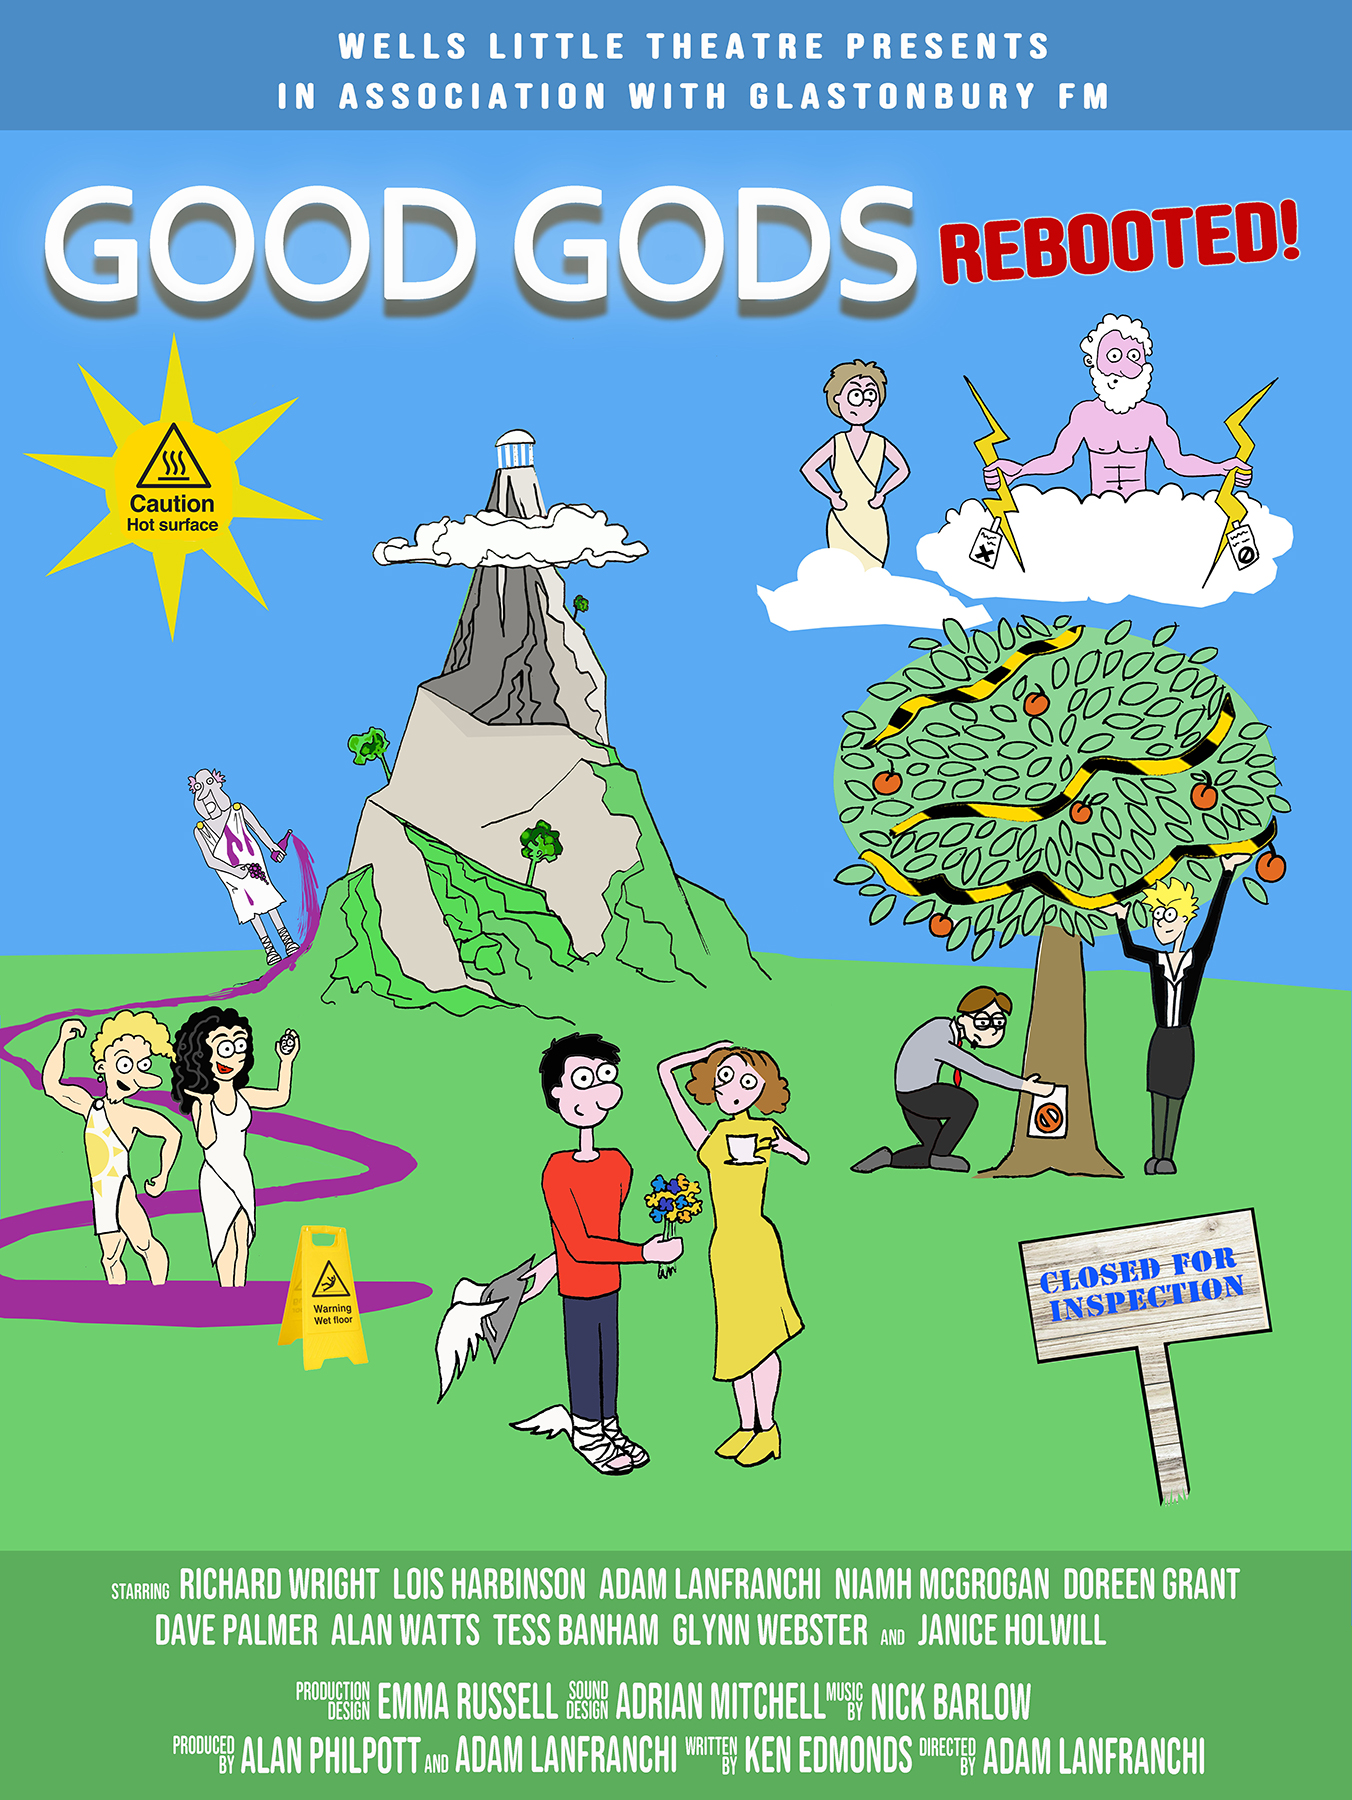 Good Gods Rebooted